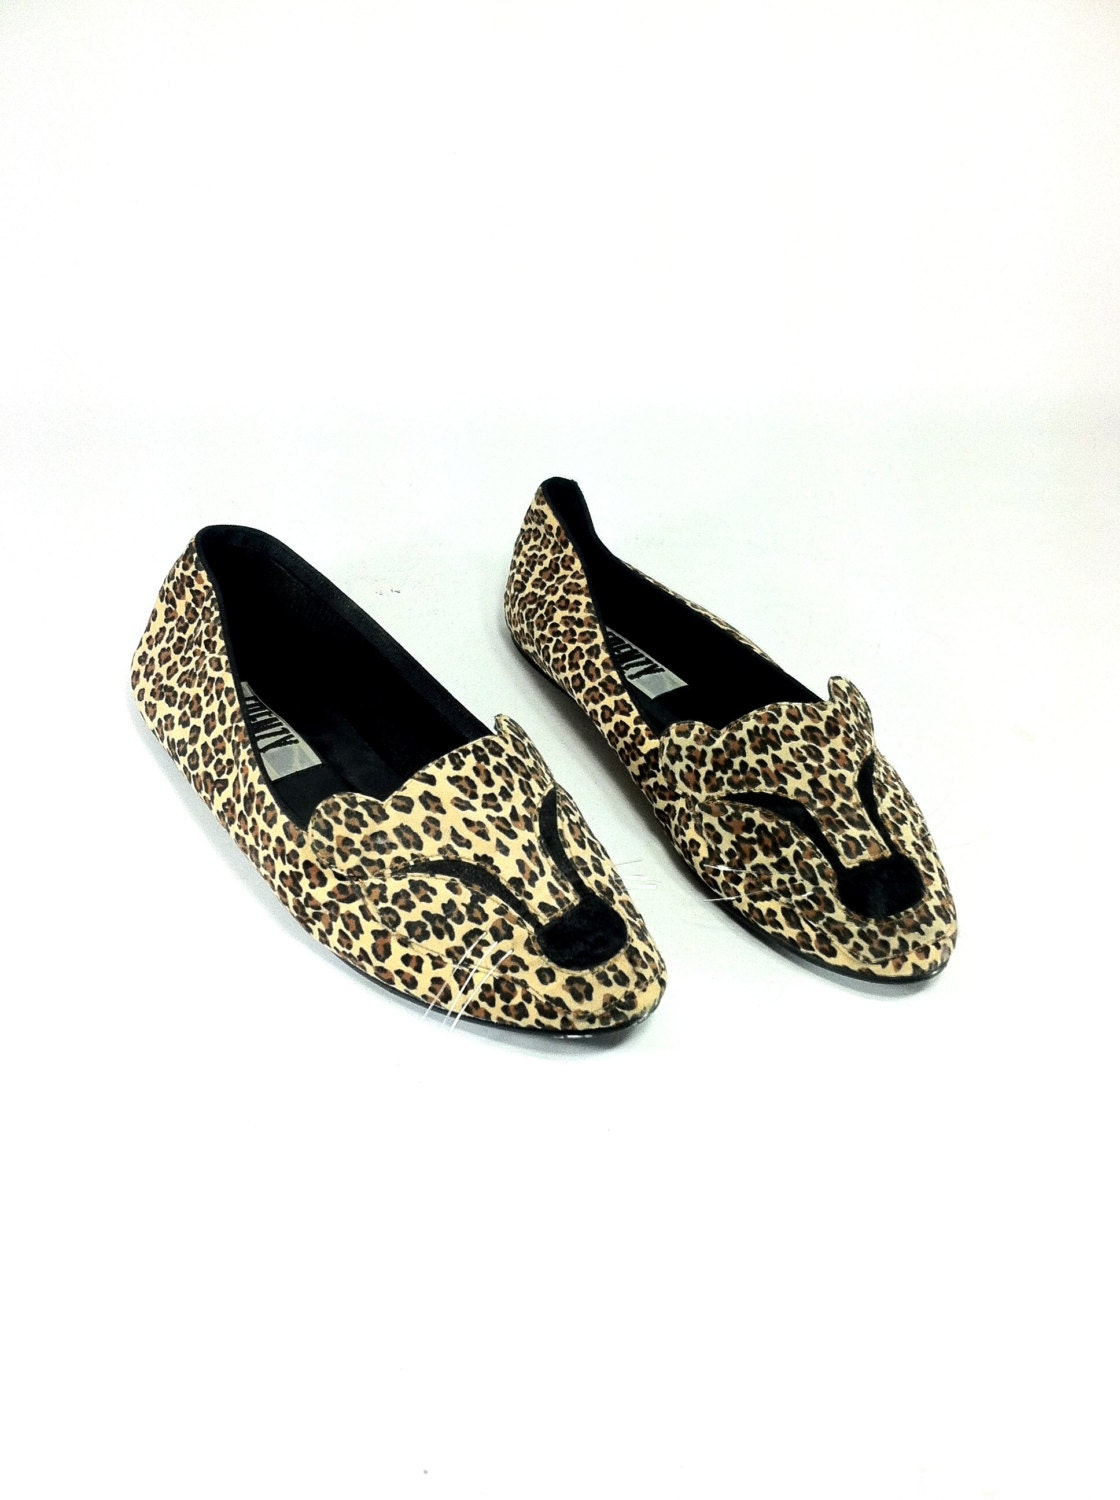 leopard slip on cat shoes 9 cat flats 9 by melissajoyvintage